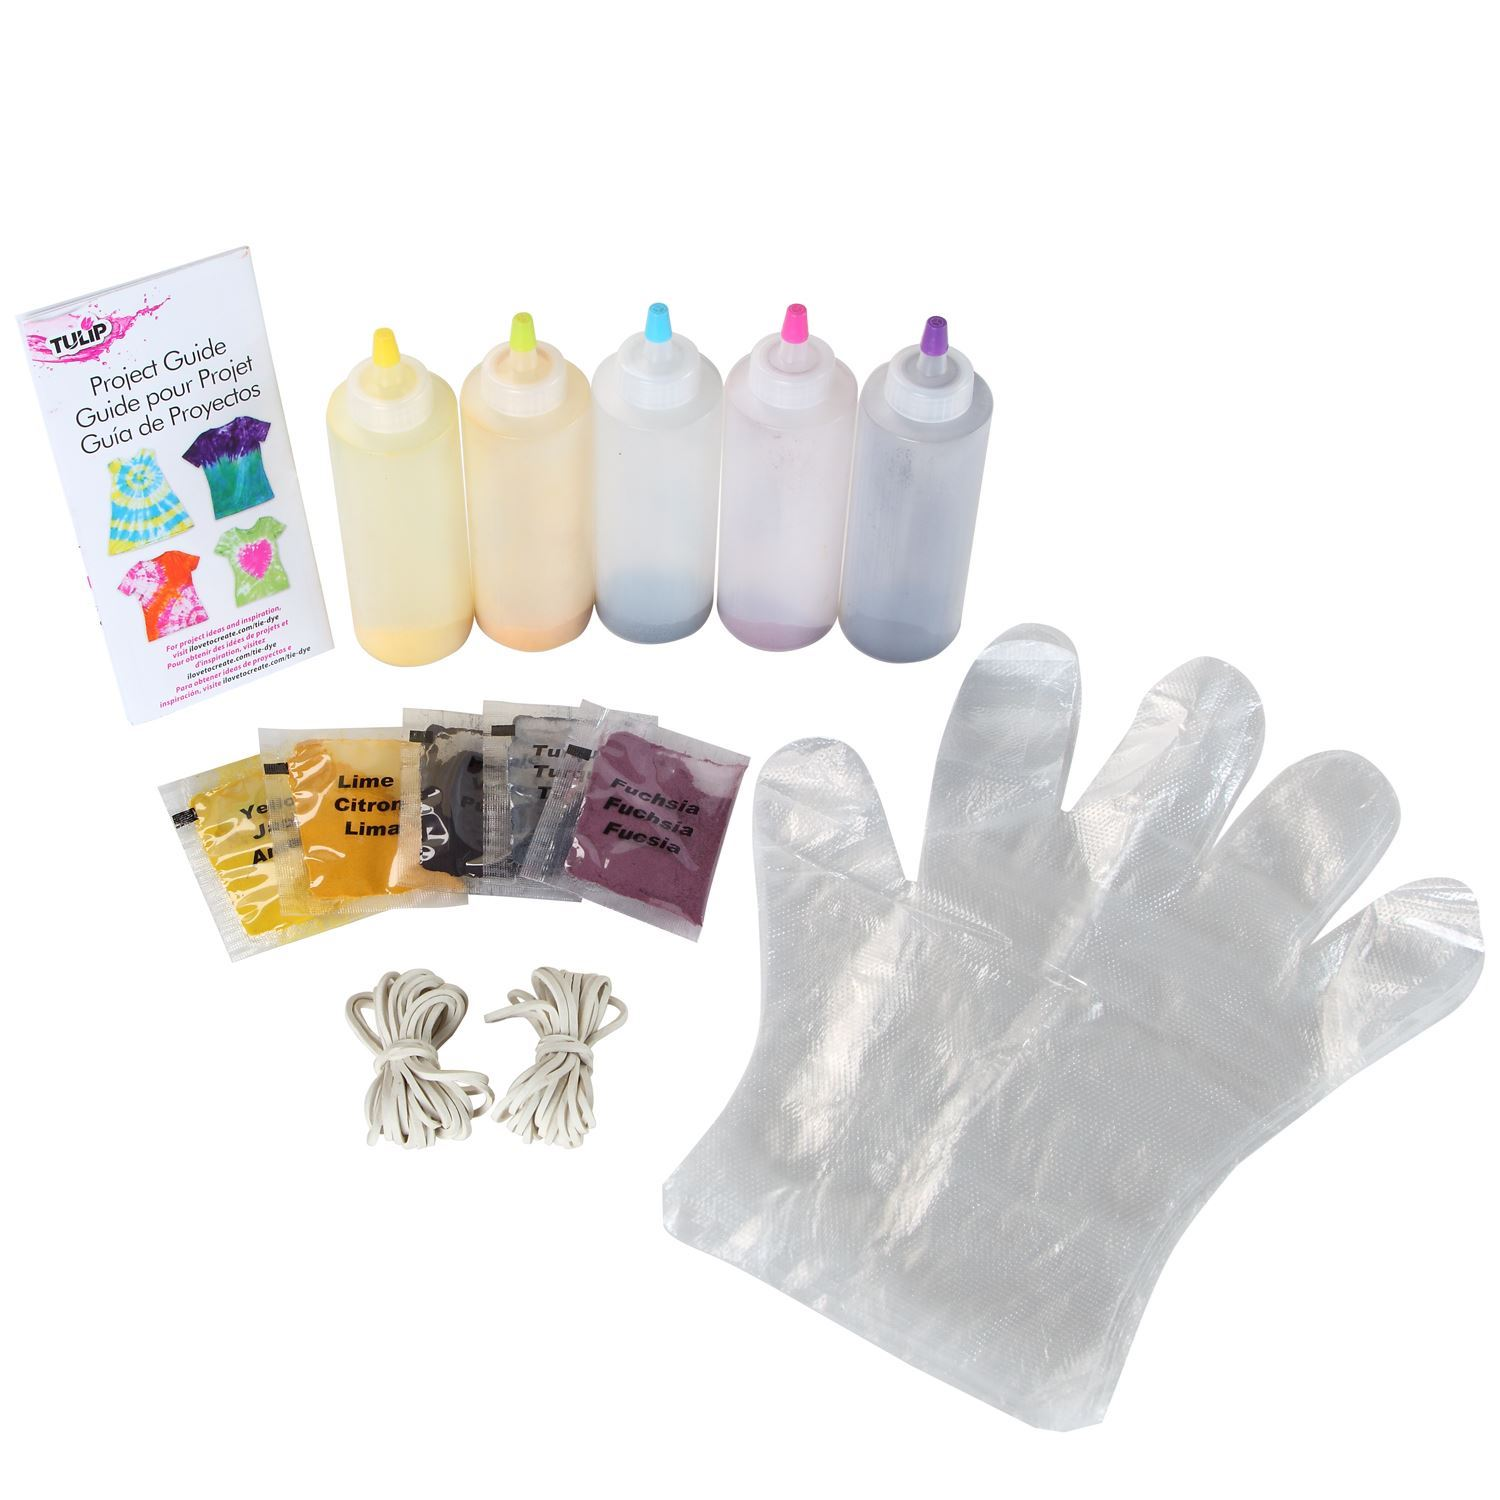 Ultimate 5-Color Tie-Dye Kit Content